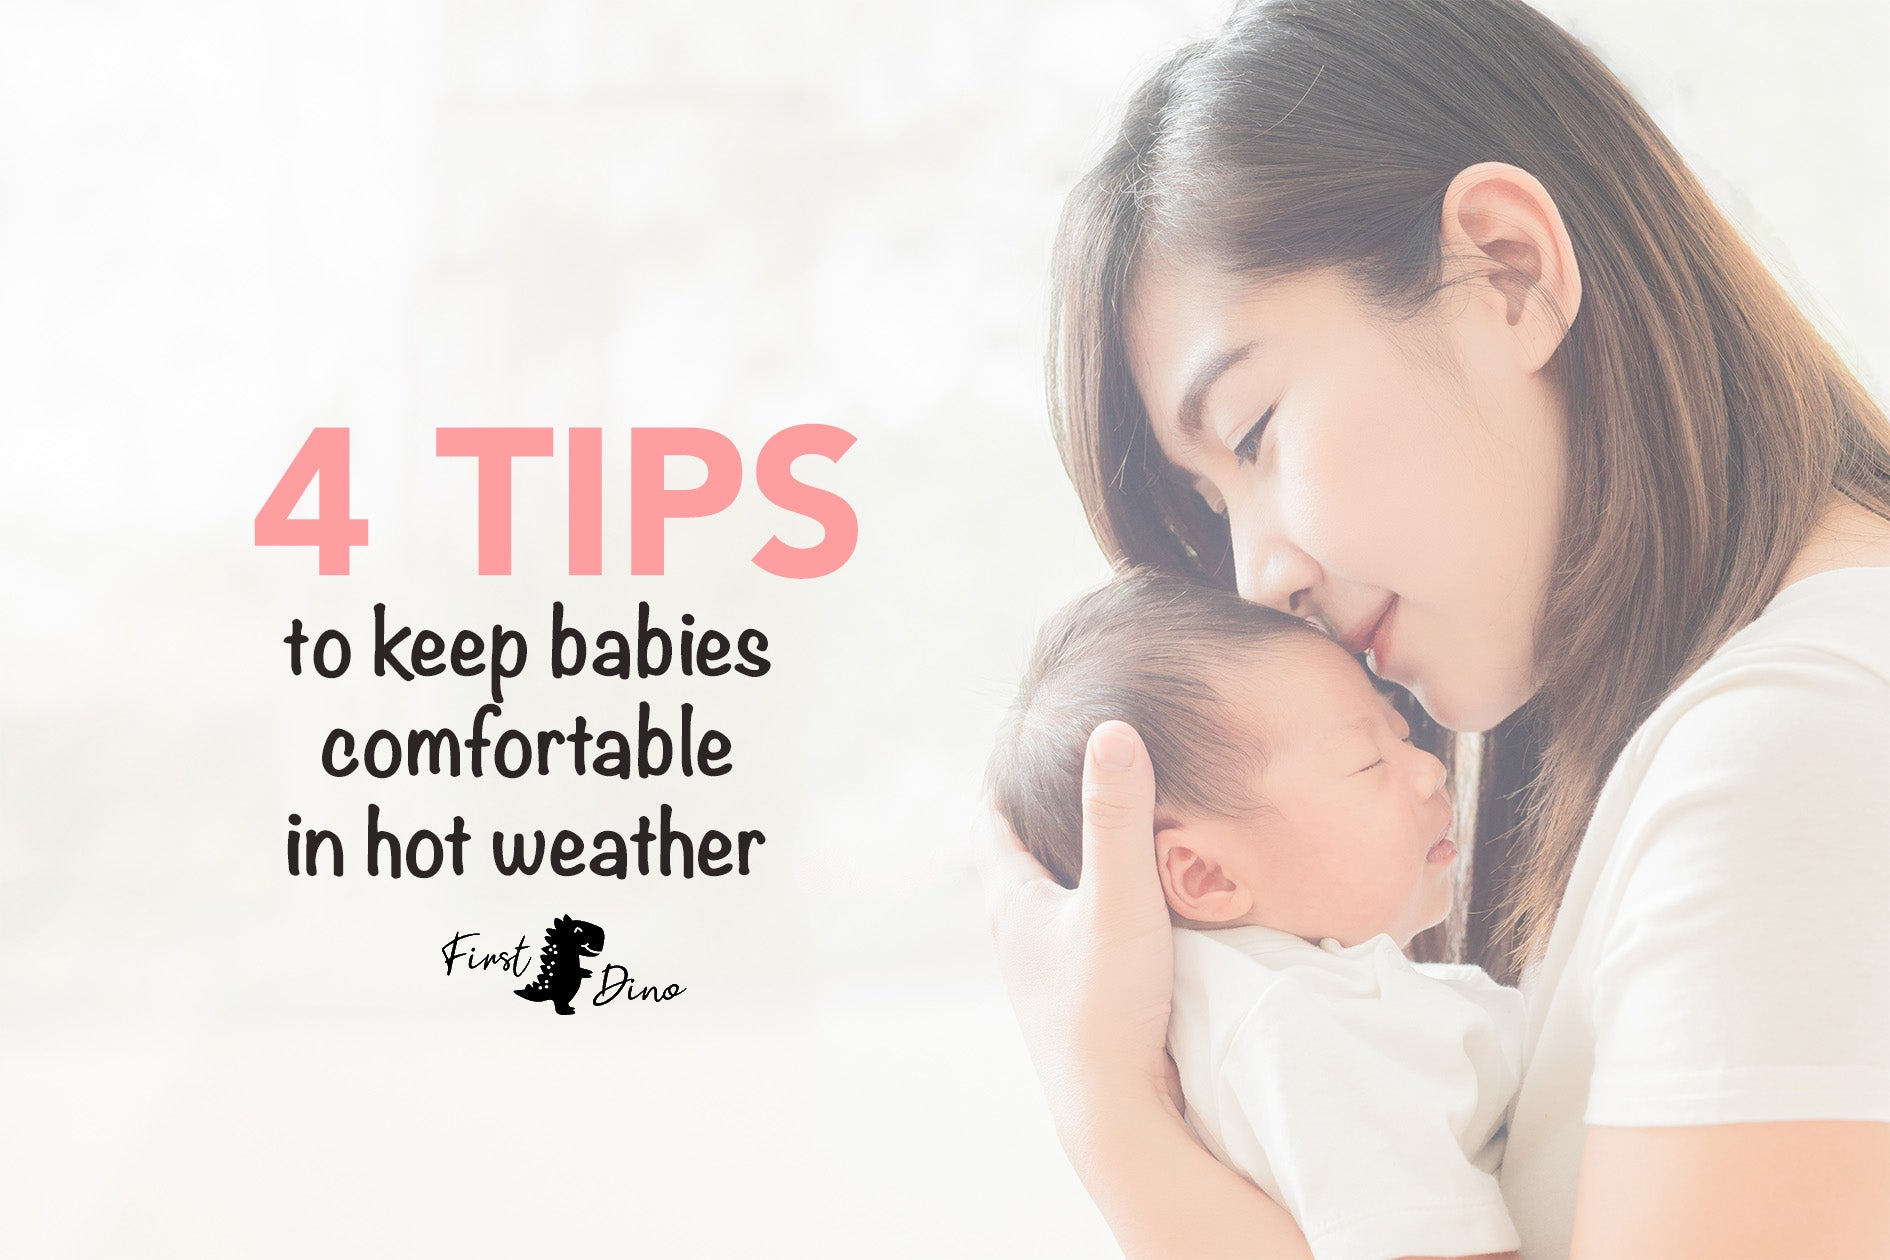 4 Tips to keep babies comfortable in hot weather